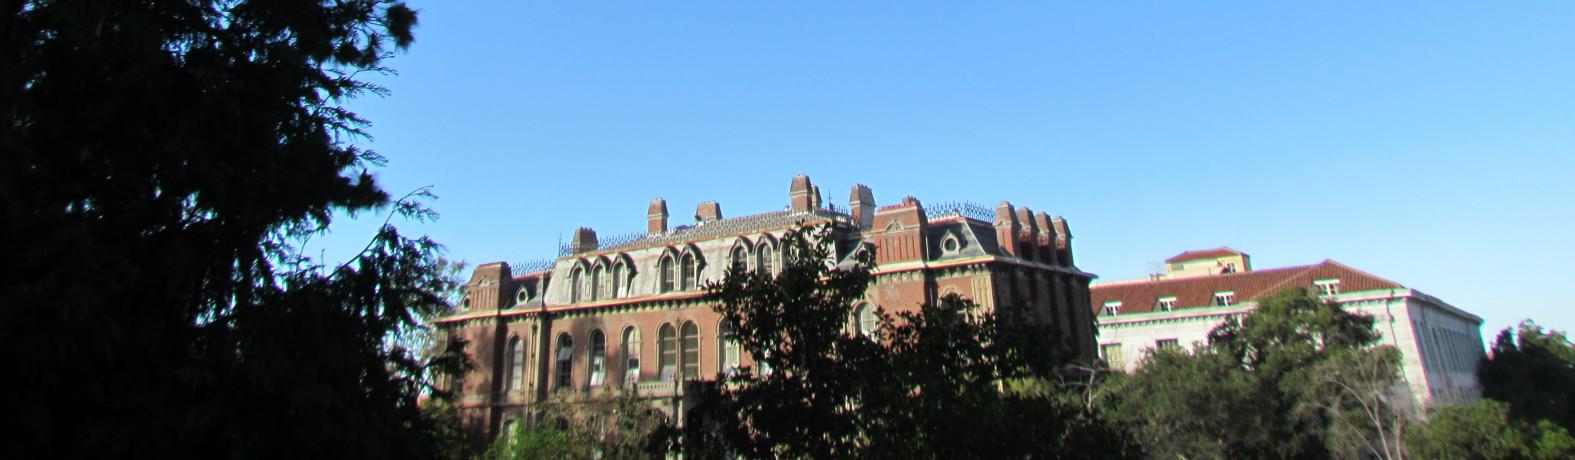 south_hall_blue_sky.jpg